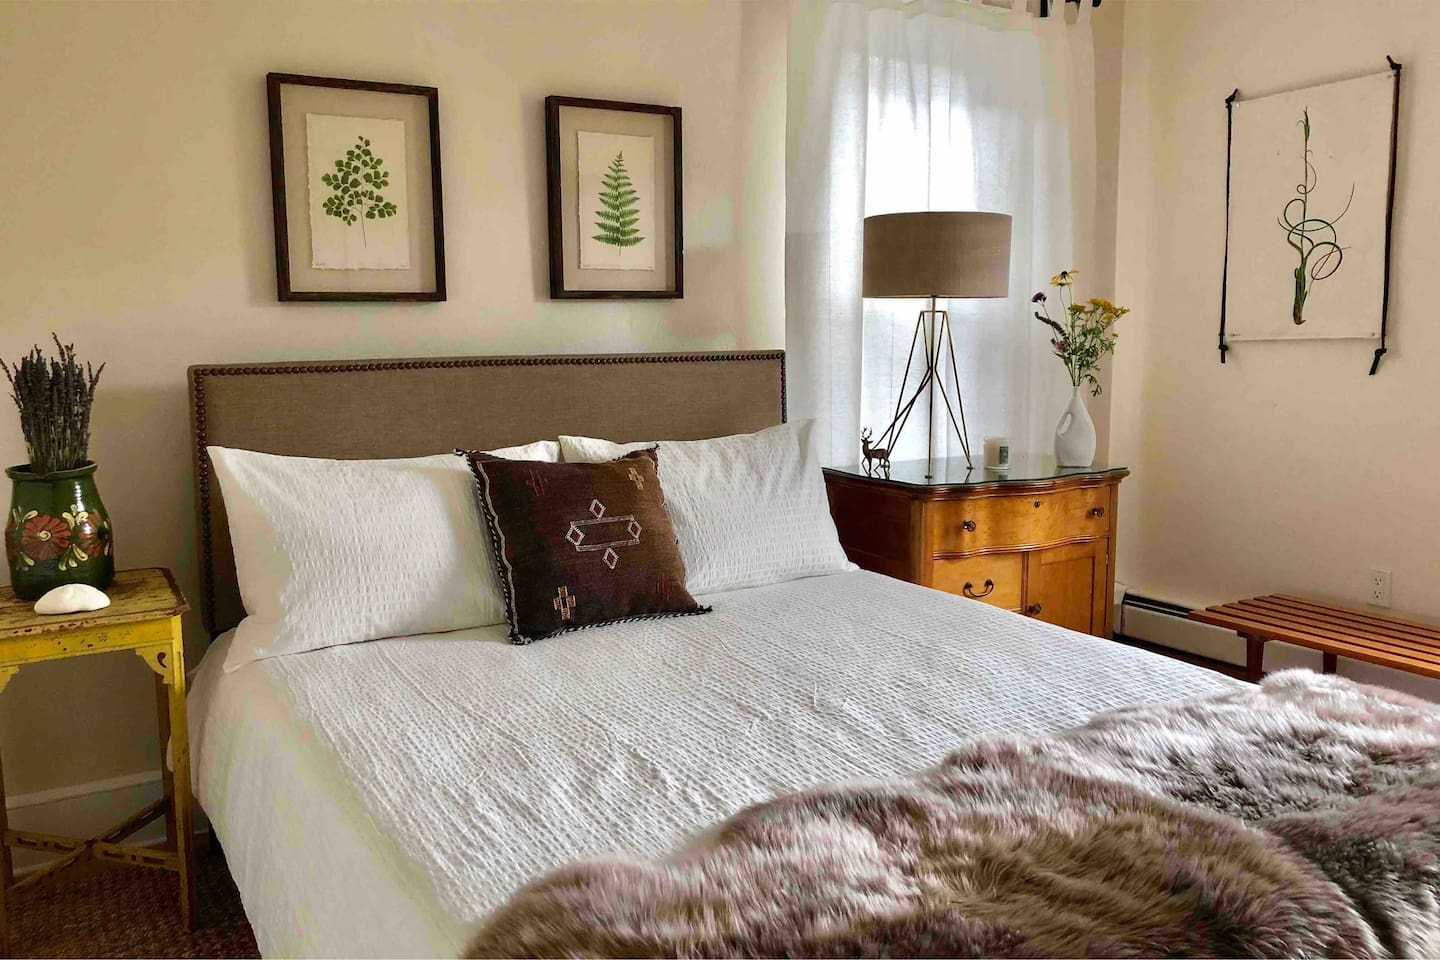 The main bedroom has a queen bed, large closet and view of Willowemoc river. Sleep with the sound of the river rushing by.